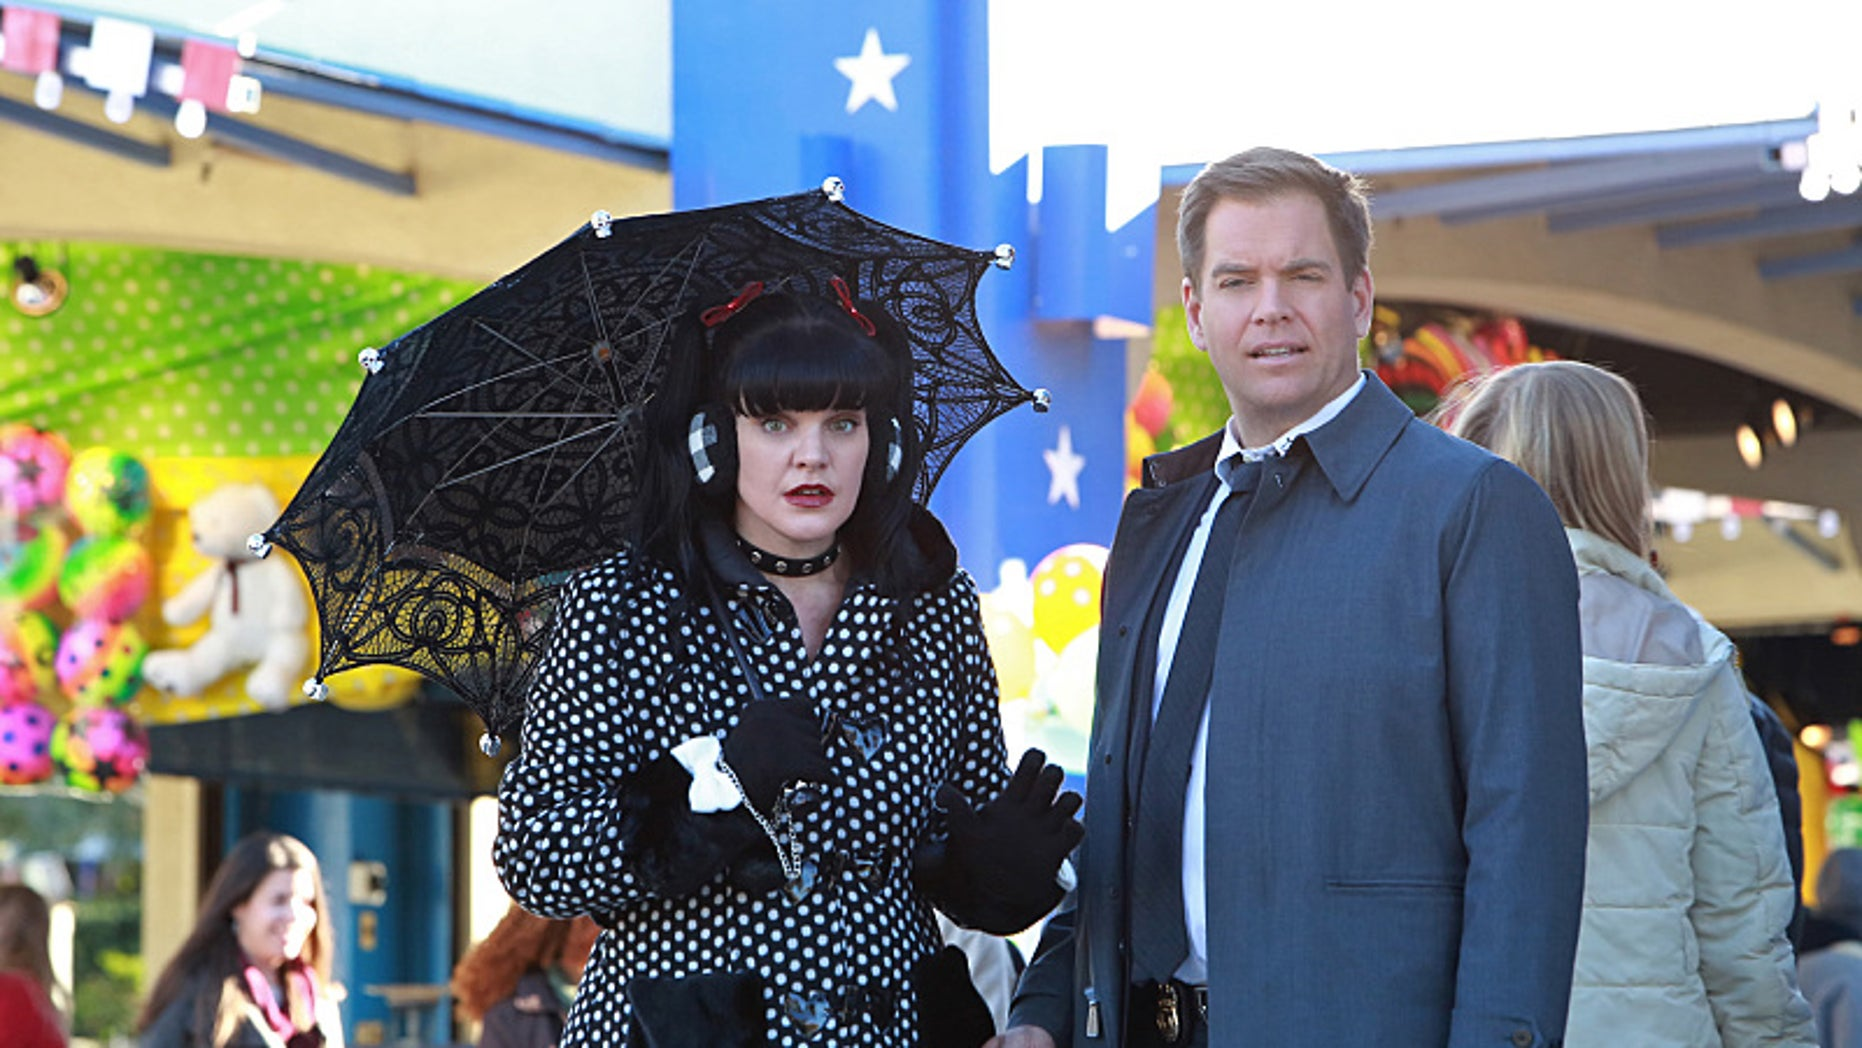 Pictured left to right: Pauley Perrette and Michael Weatherly